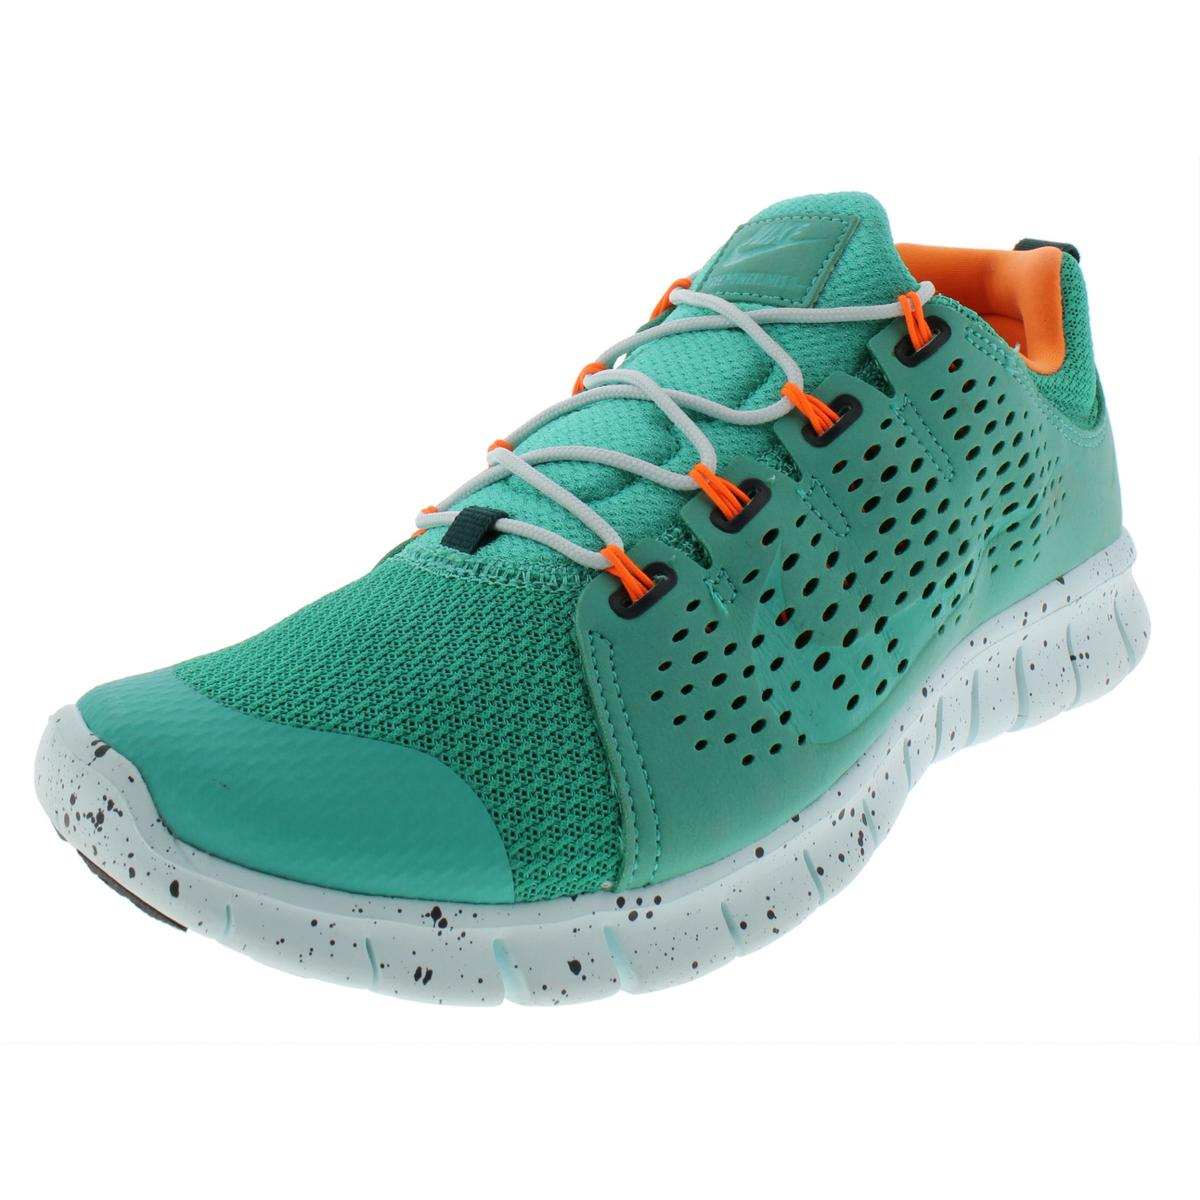 best website 364bf bc171 Details about Nike Mens Free Powerlines+II Green Running Shoes Sneakers 9  Medium (D) BHFO 2084